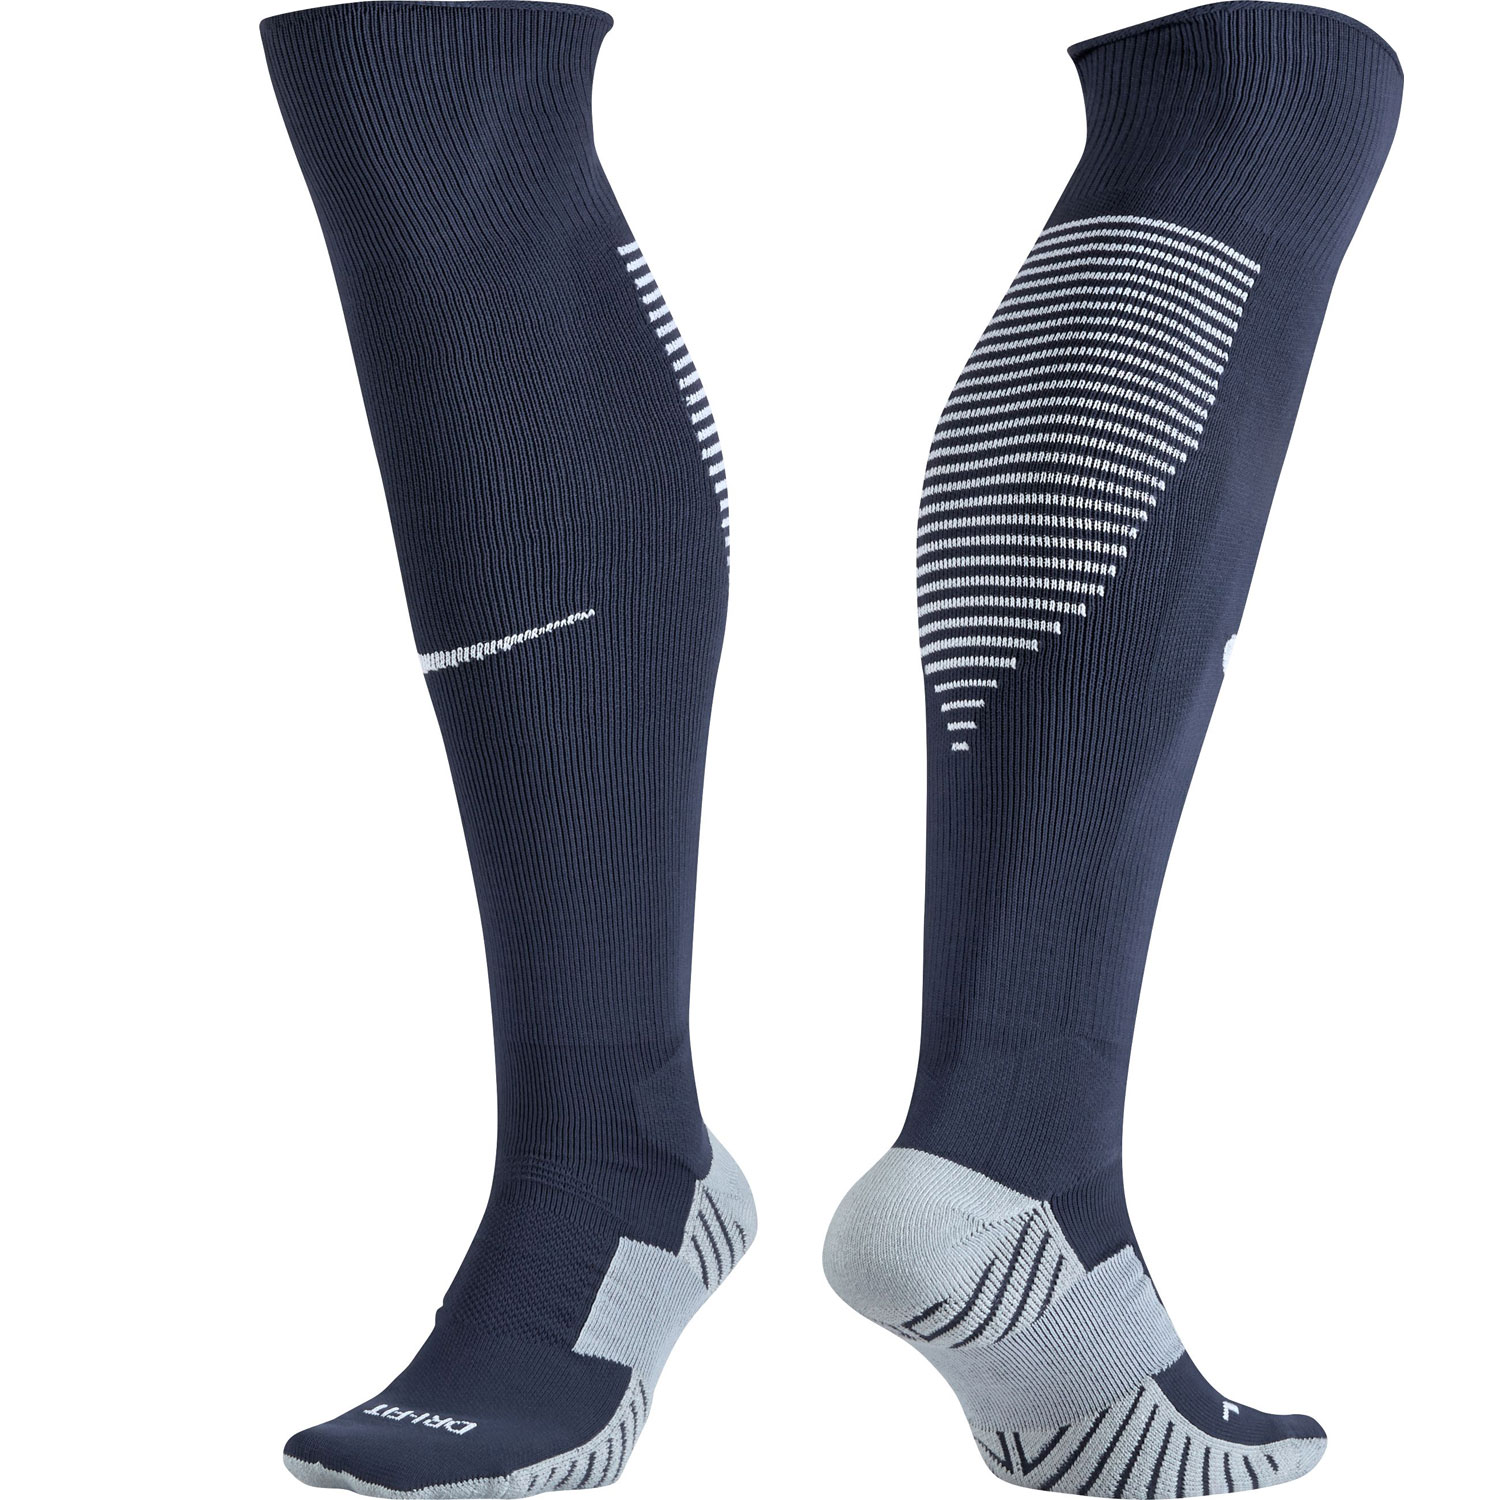 Nike Stadium Football OTC Sock | WeGotSoccer.com